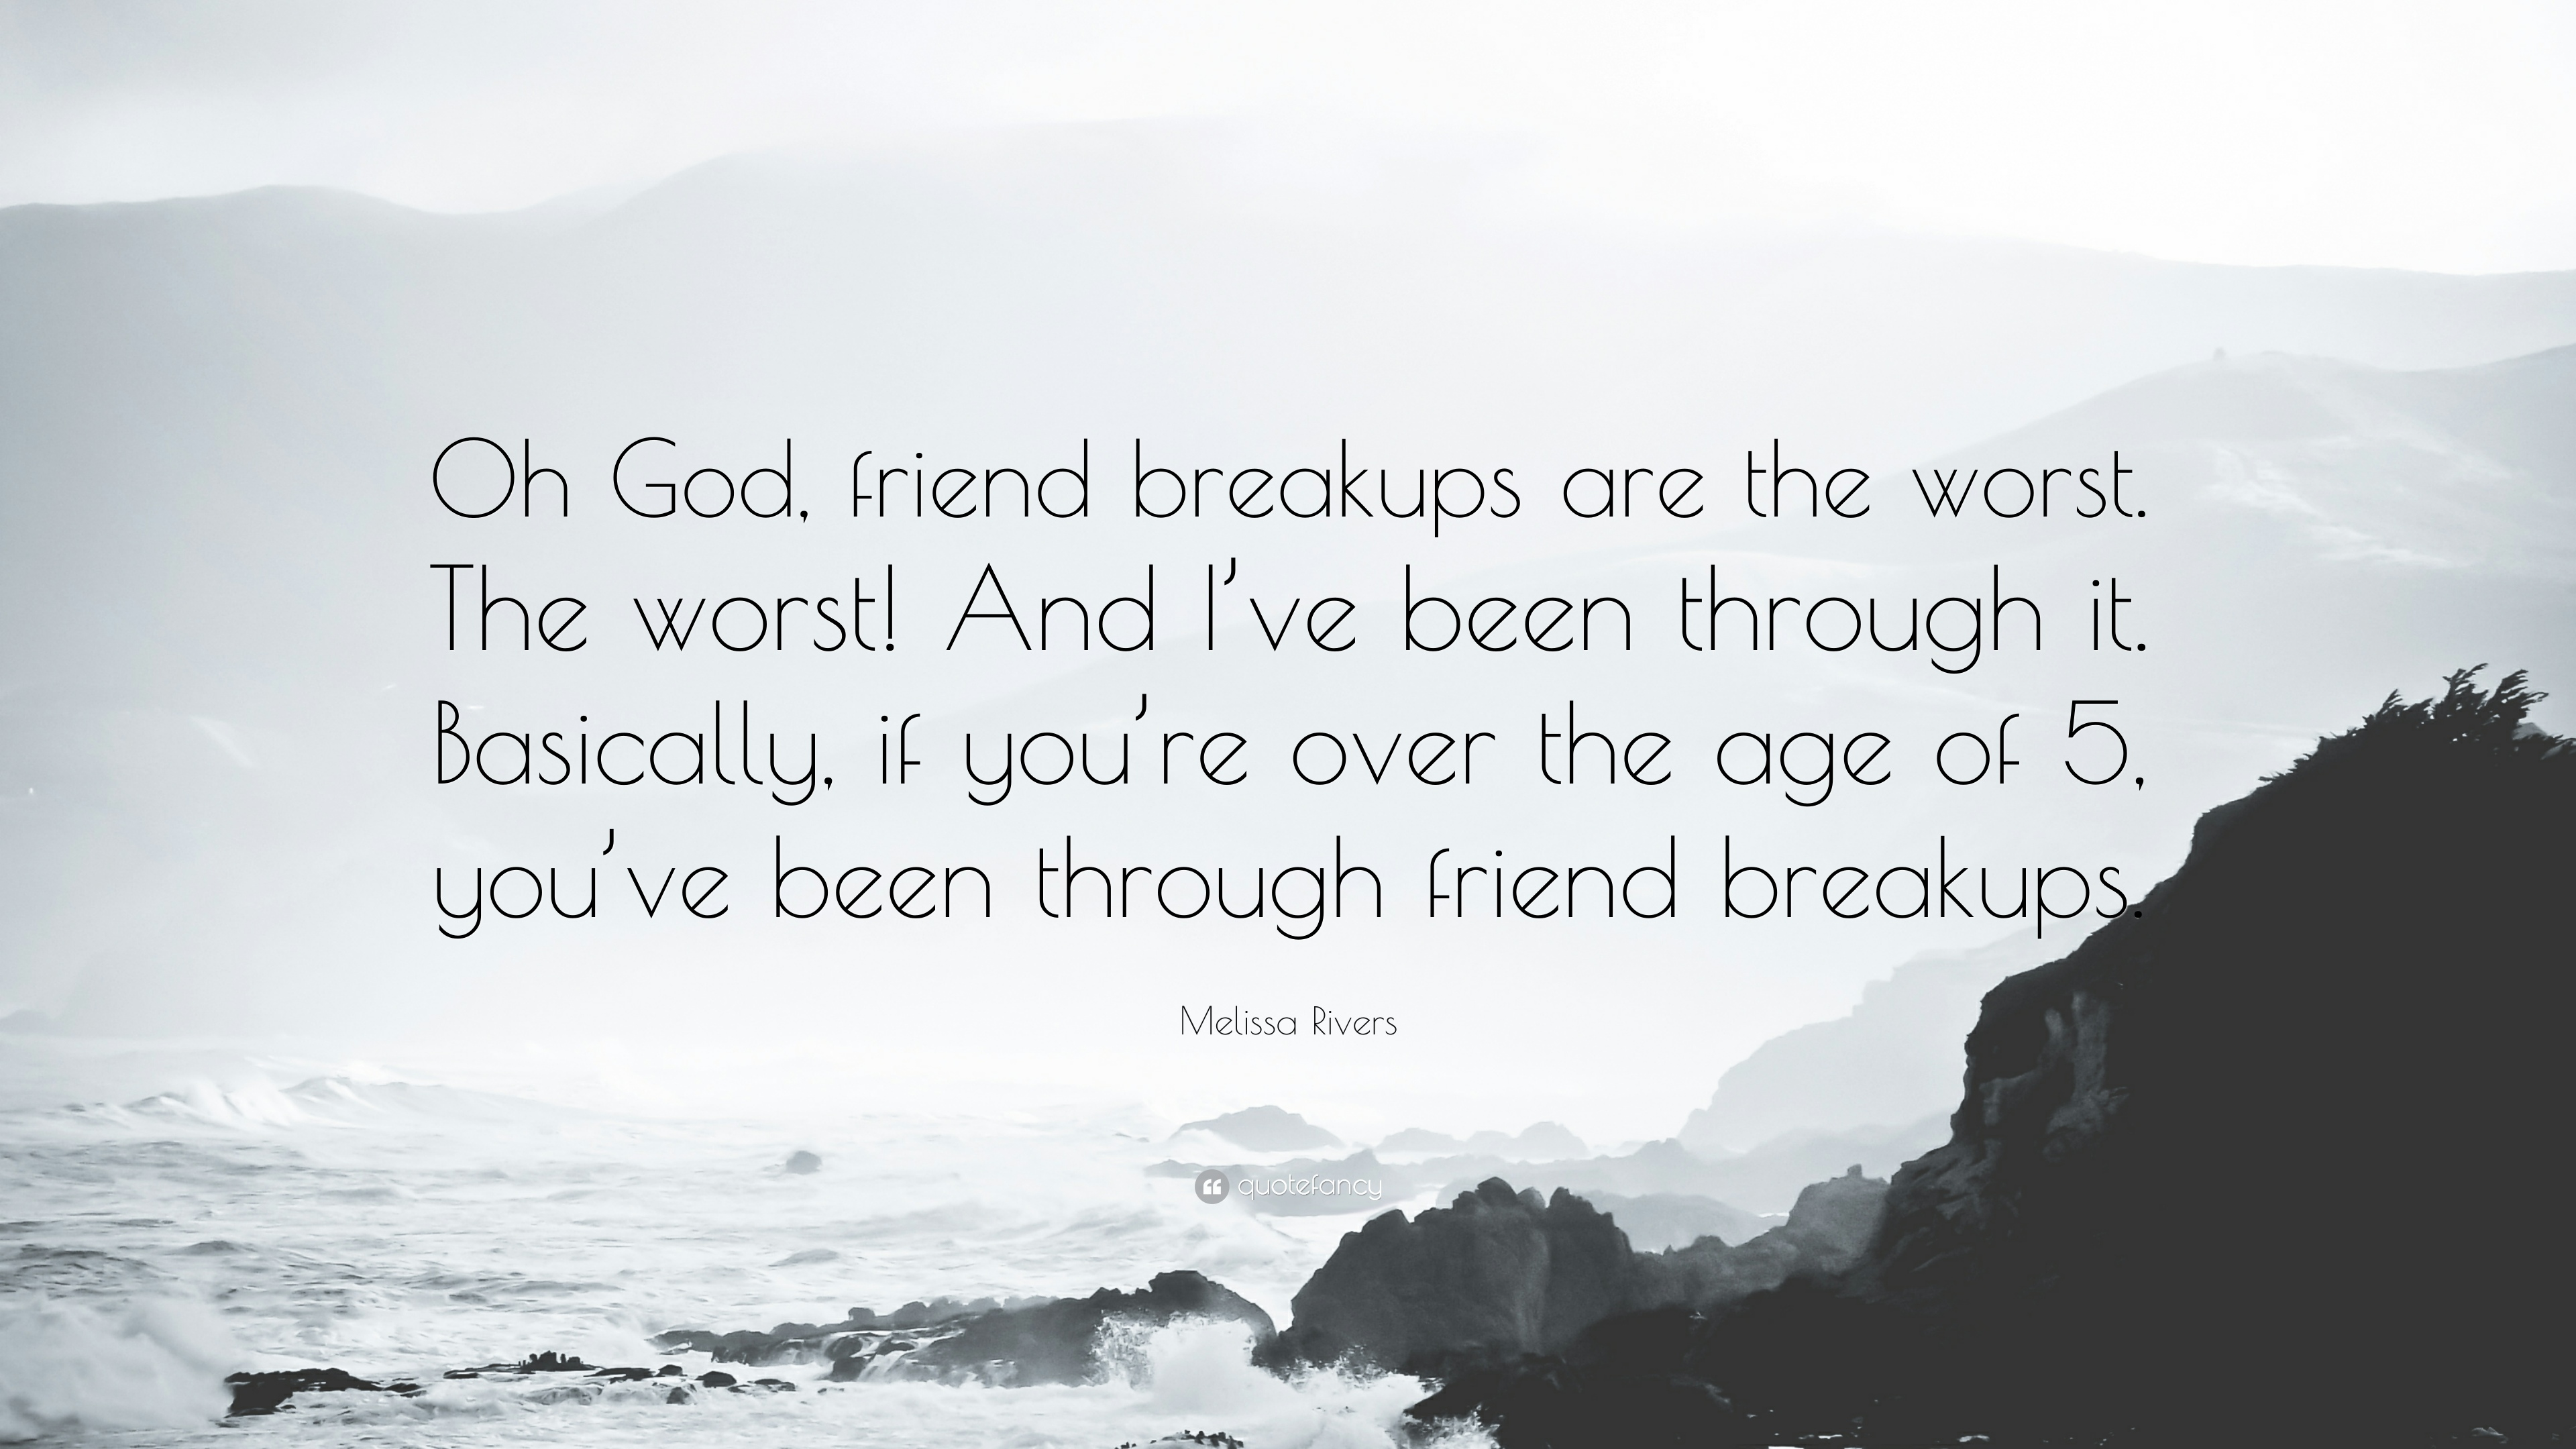 Melissa Rivers Quote Oh God Friend Breakups Are The Worst The Worst And I Ve Been Through It Basically If You Re Over The Age Of 5 You 7 Wallpapers Quotefancy